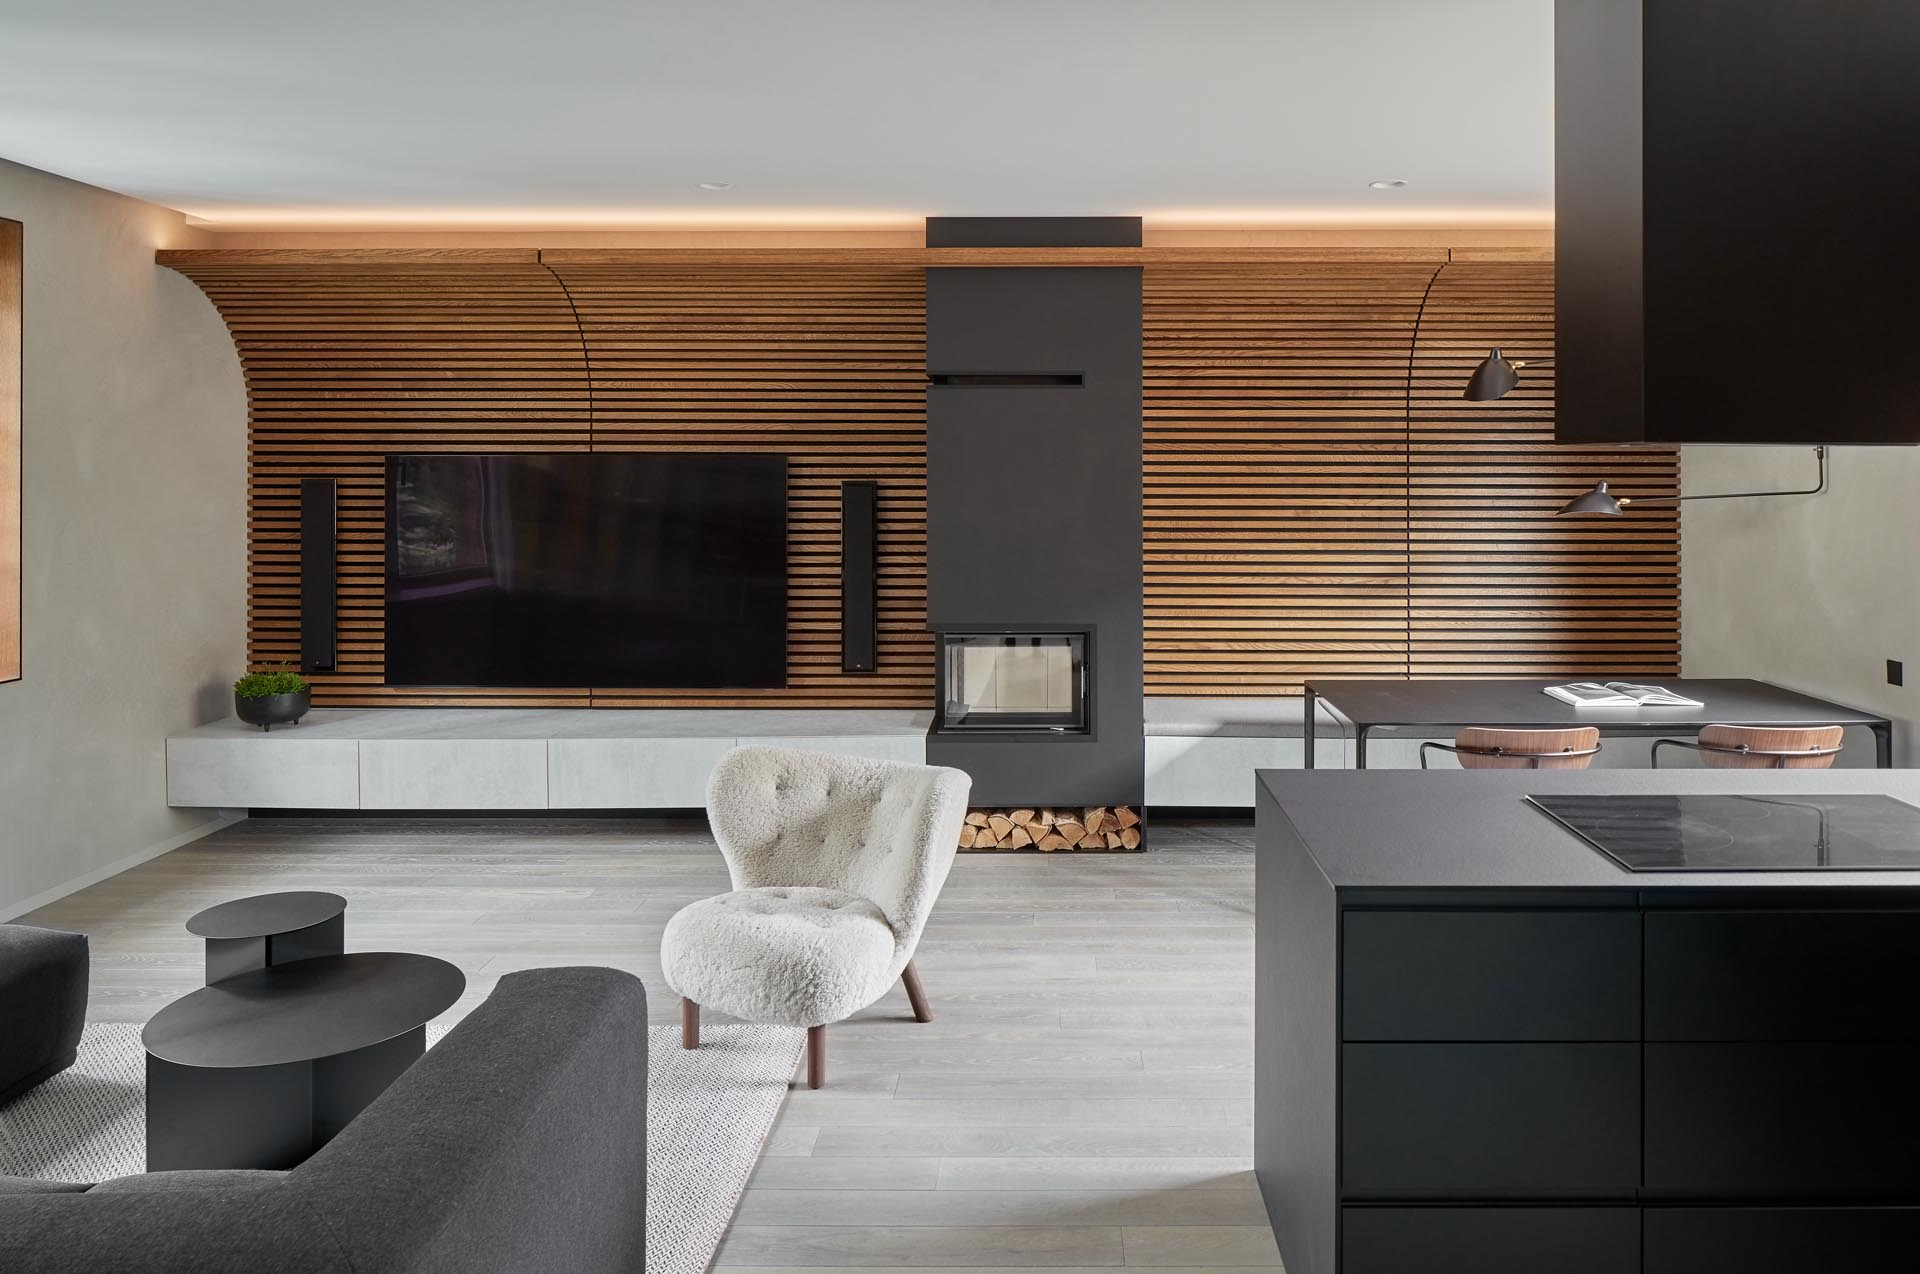 A wood slat accent wall is curved towards the ceiling, and becomes the backdrop for the television and wall-mounted speakers. A fireplace with a black surround that incorporates firewood storage, separates the living room side from the dining area.